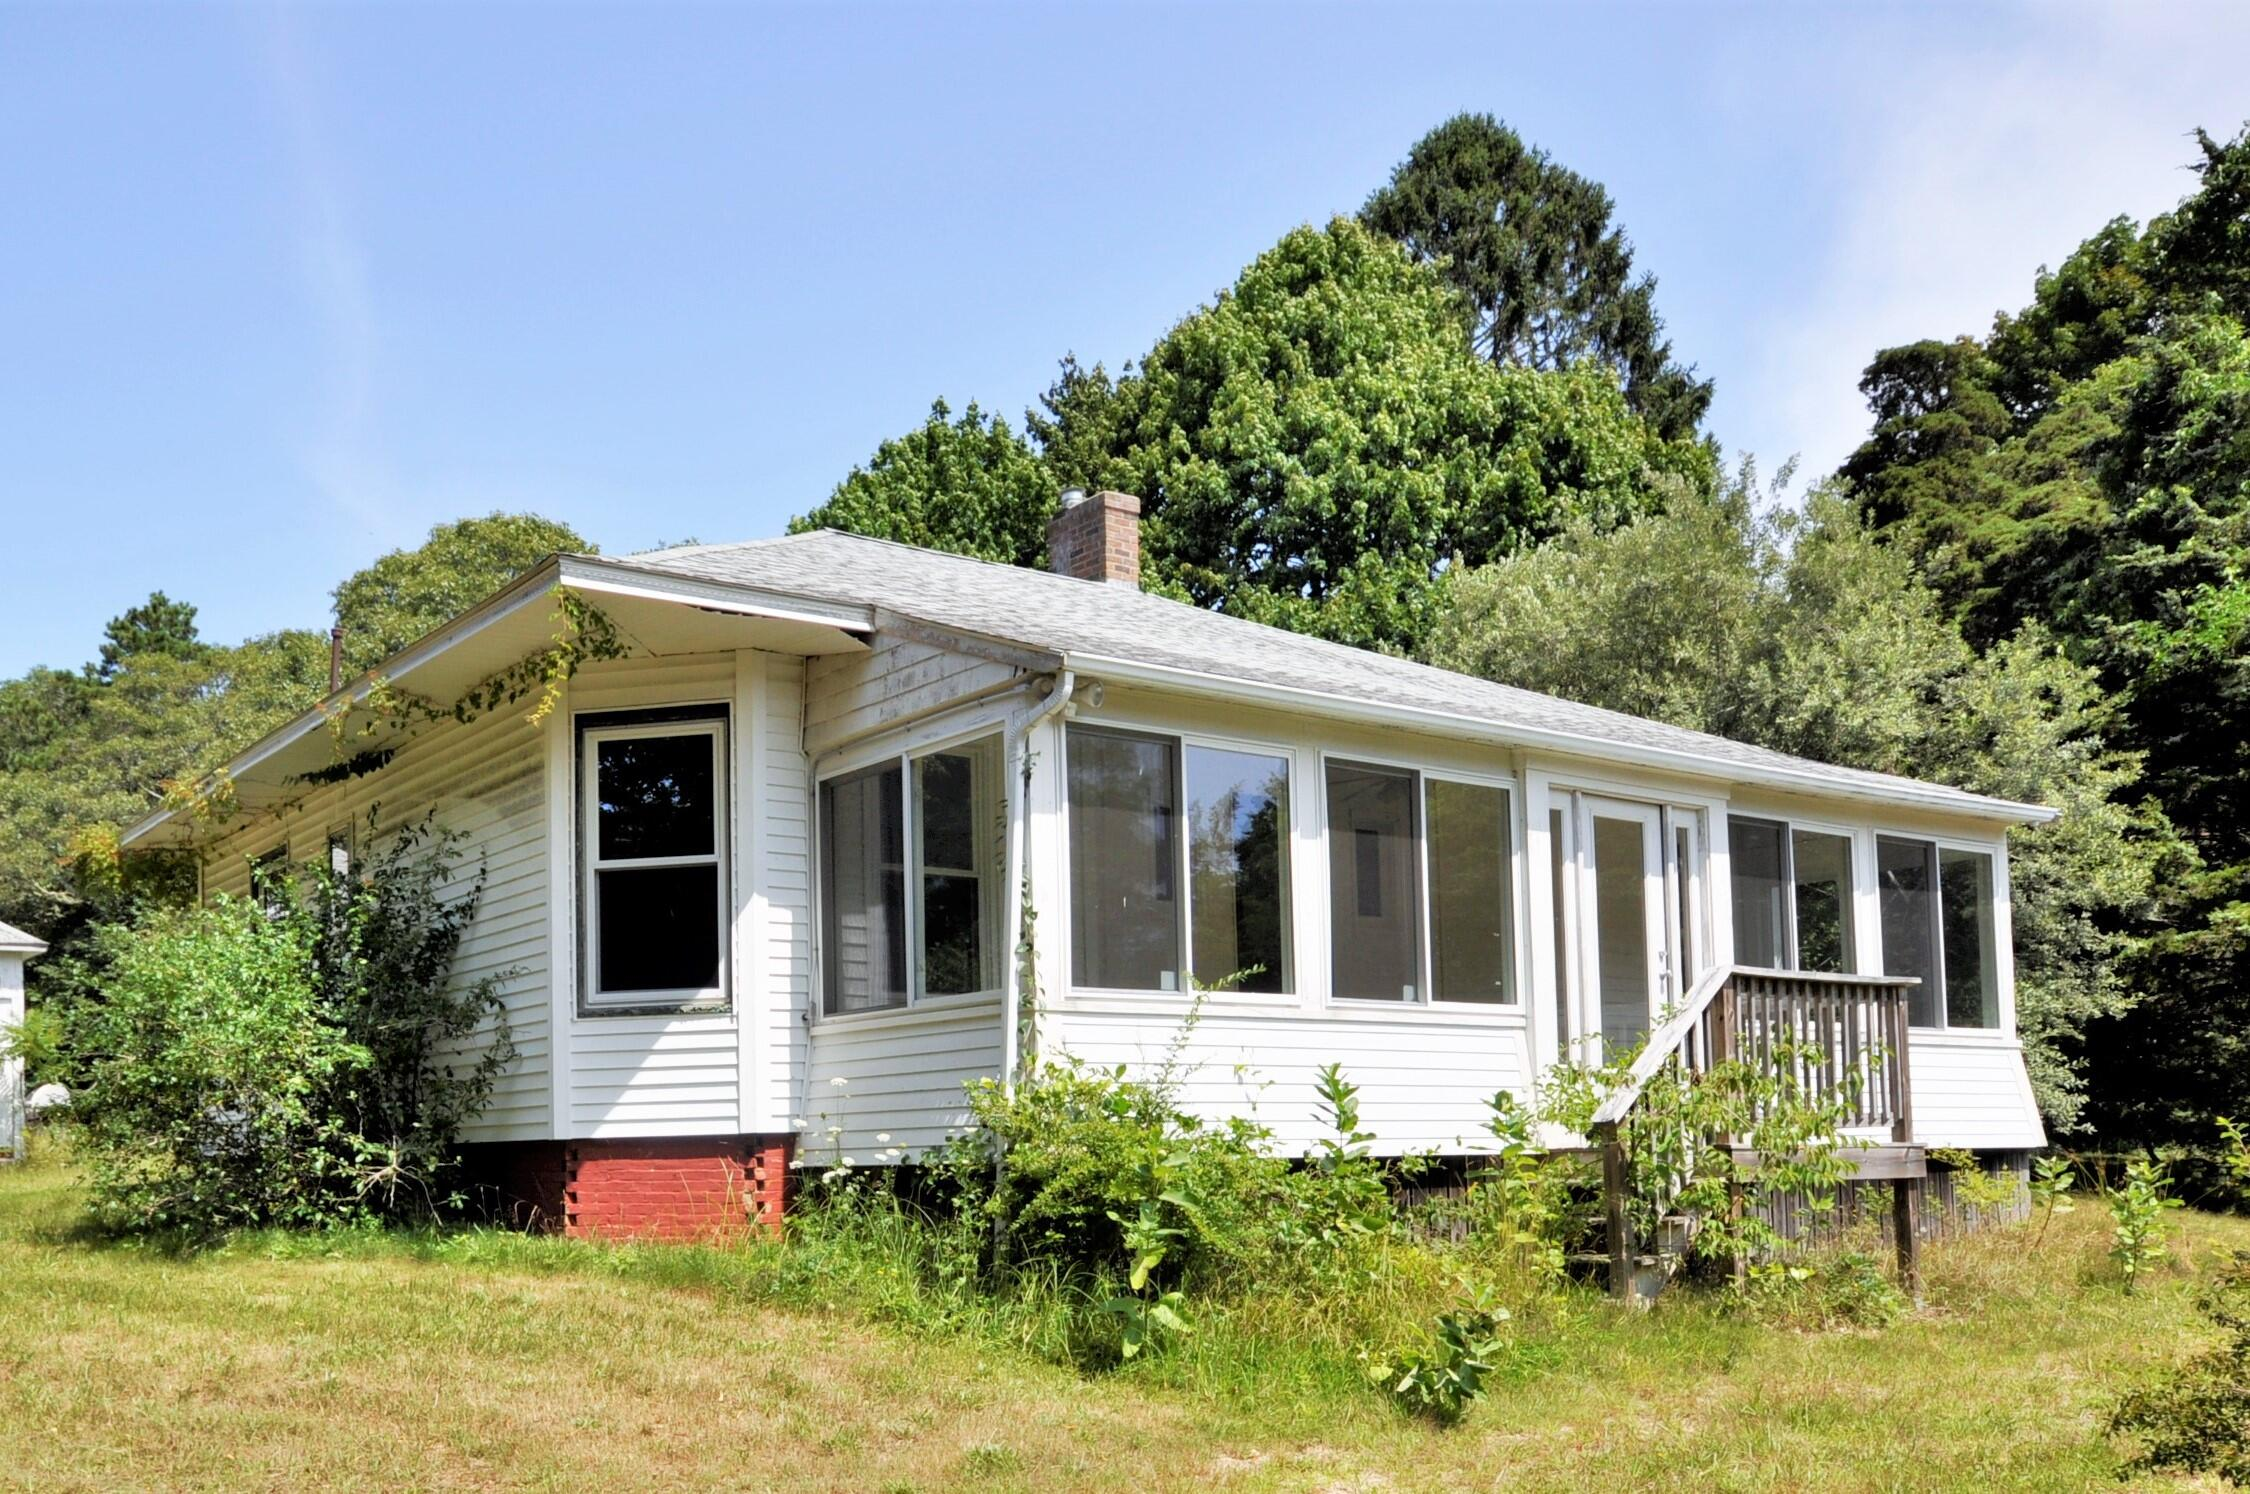 61 Old Stage Road, Centerville MA, 02632 details